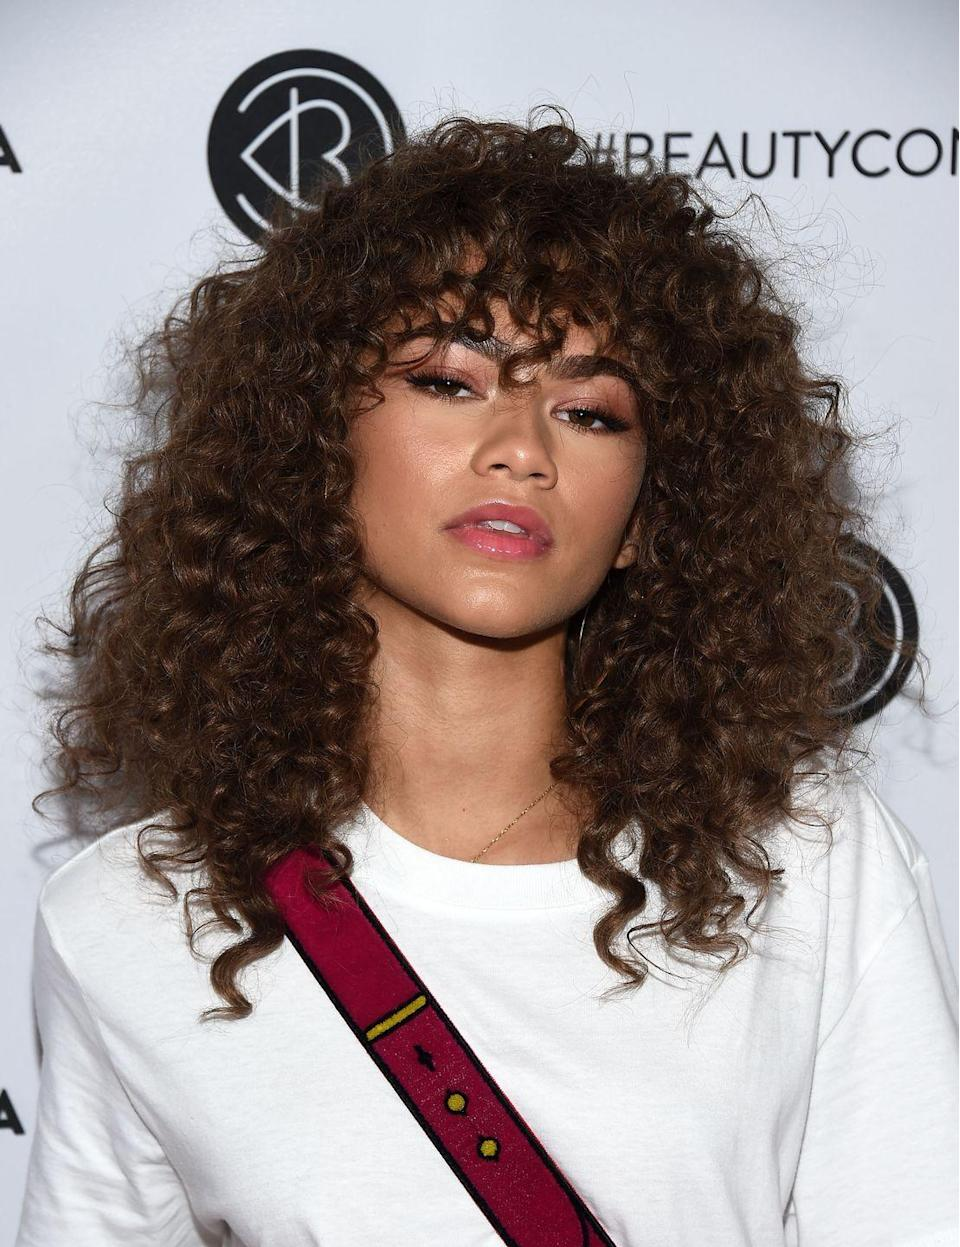 "<p>Whether your hair is super long or medium length like actress Zendaya's, these <a href=""https://www.goodhousekeeping.com/beauty/hair/g33267765/types-of-bangs/"" rel=""nofollow noopener"" target=""_blank"" data-ylk=""slk:curly bangs"" class=""link rapid-noclick-resp"">curly bangs</a> channel instant cool.</p>"